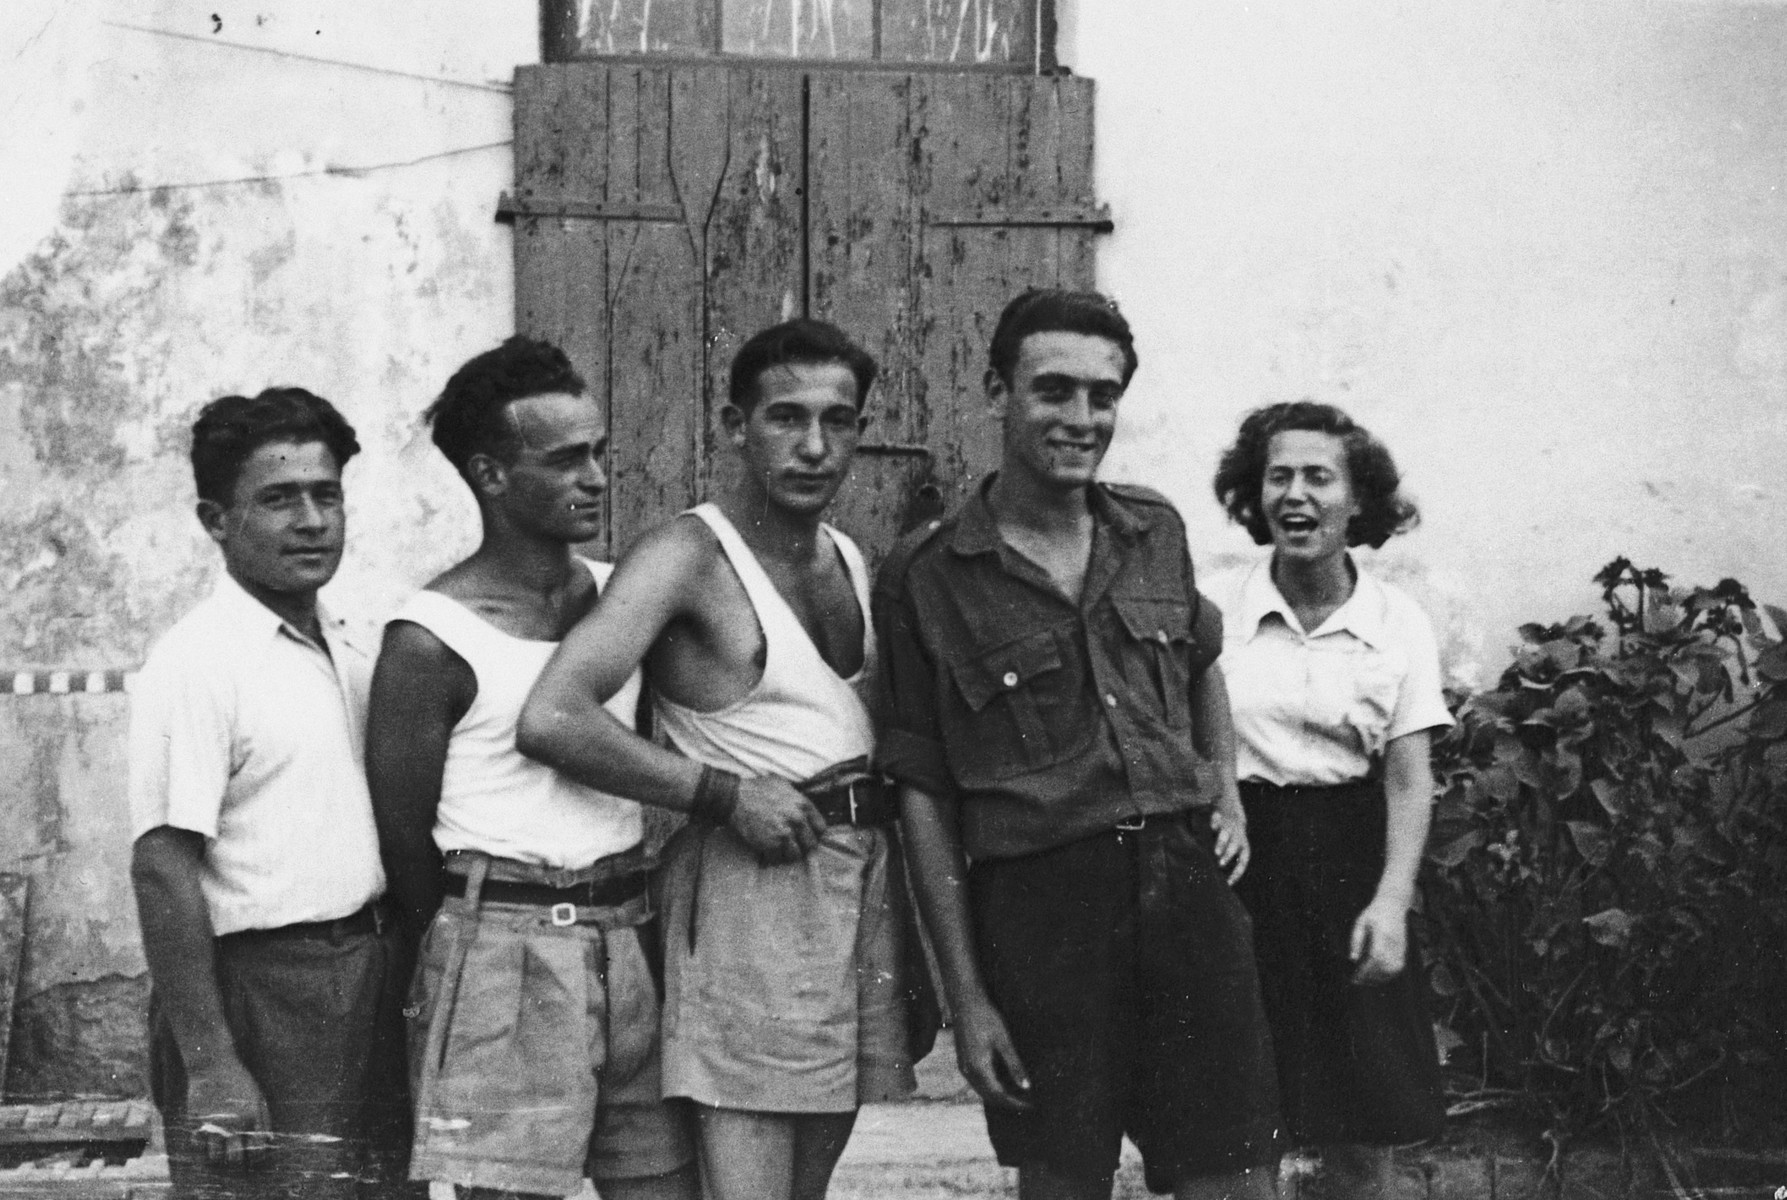 Five members of Kibbutz Maestro pose together outside a building.  Boris Shub is pictured second from the right.